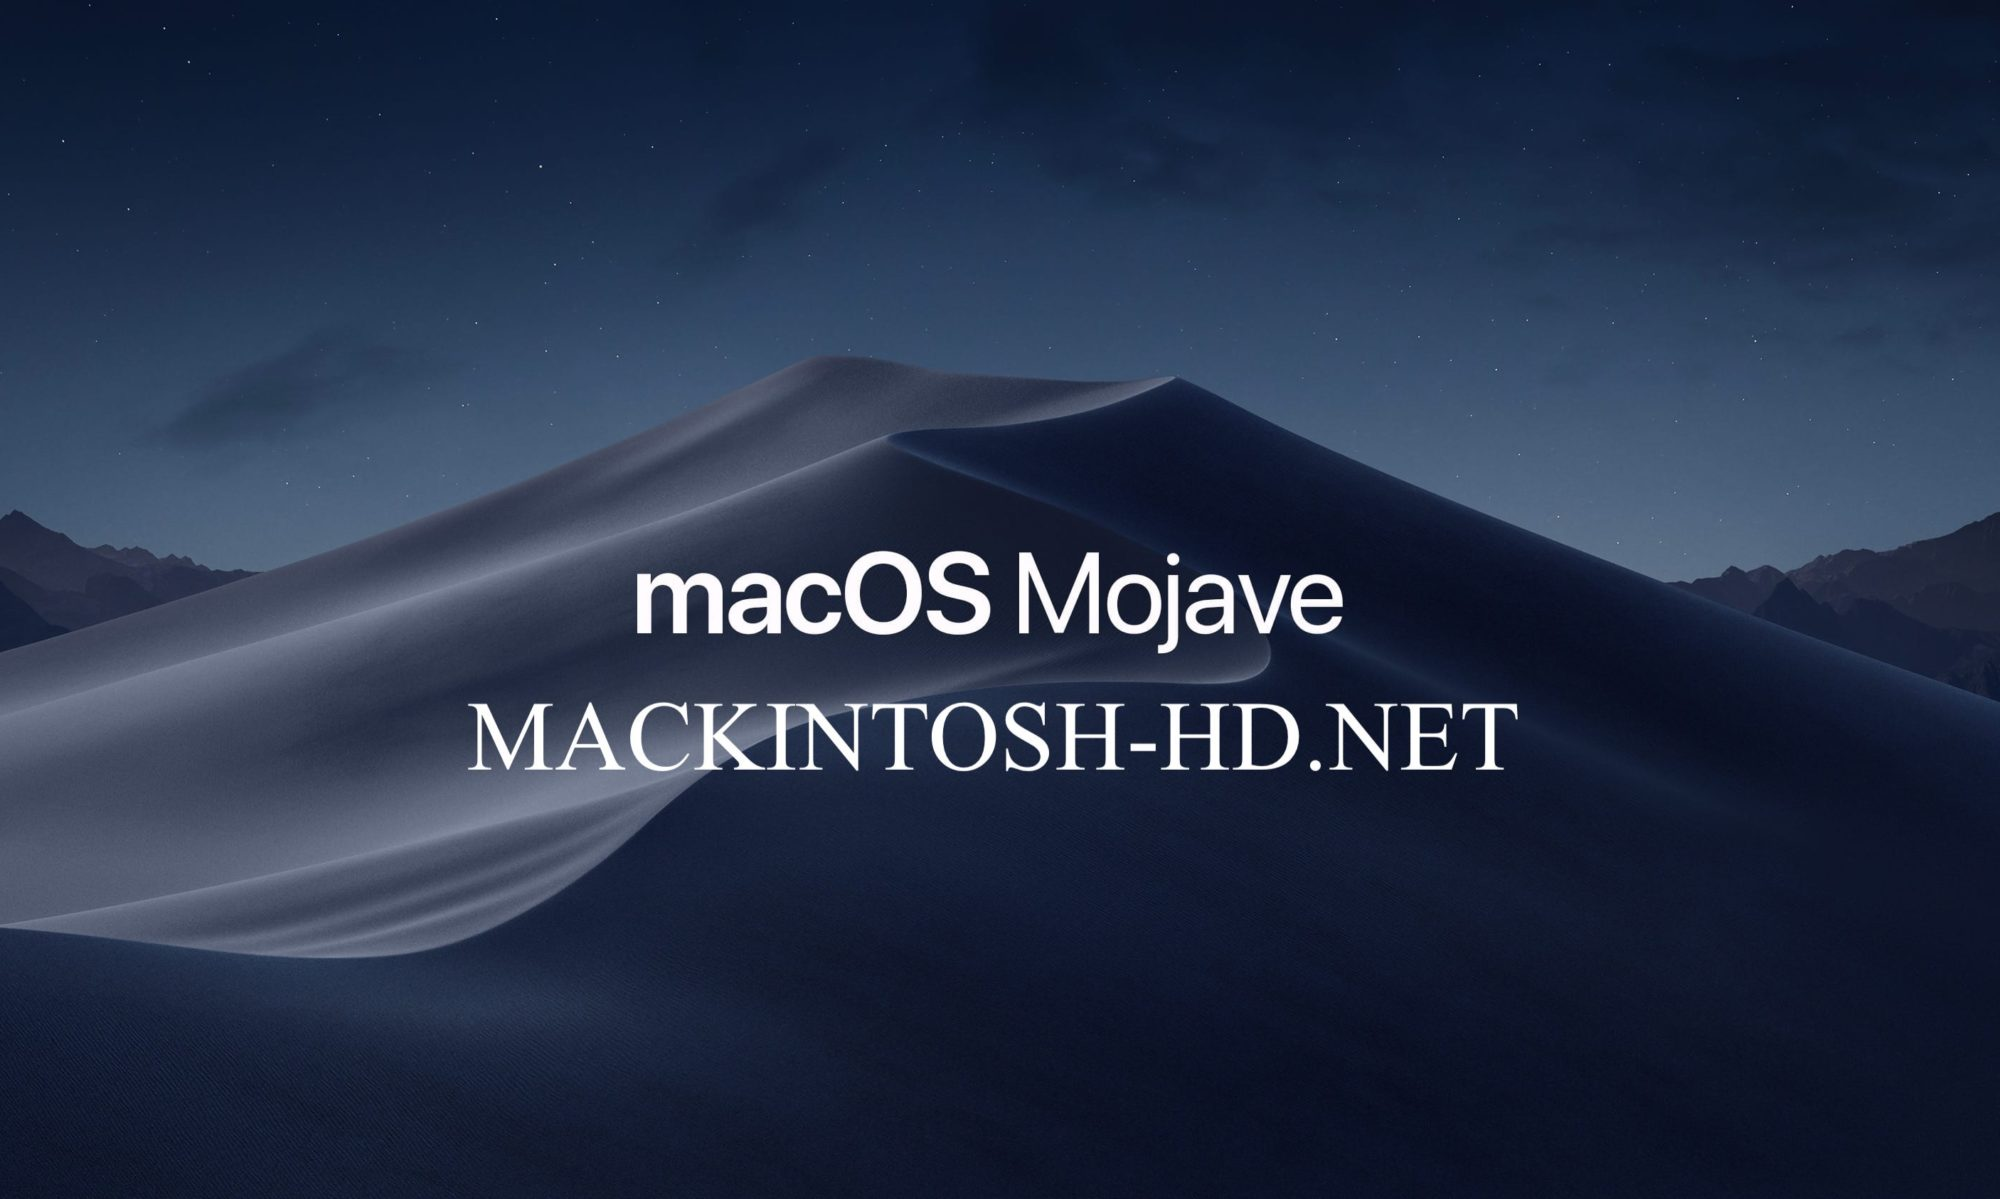 MACKINTOSH-HD